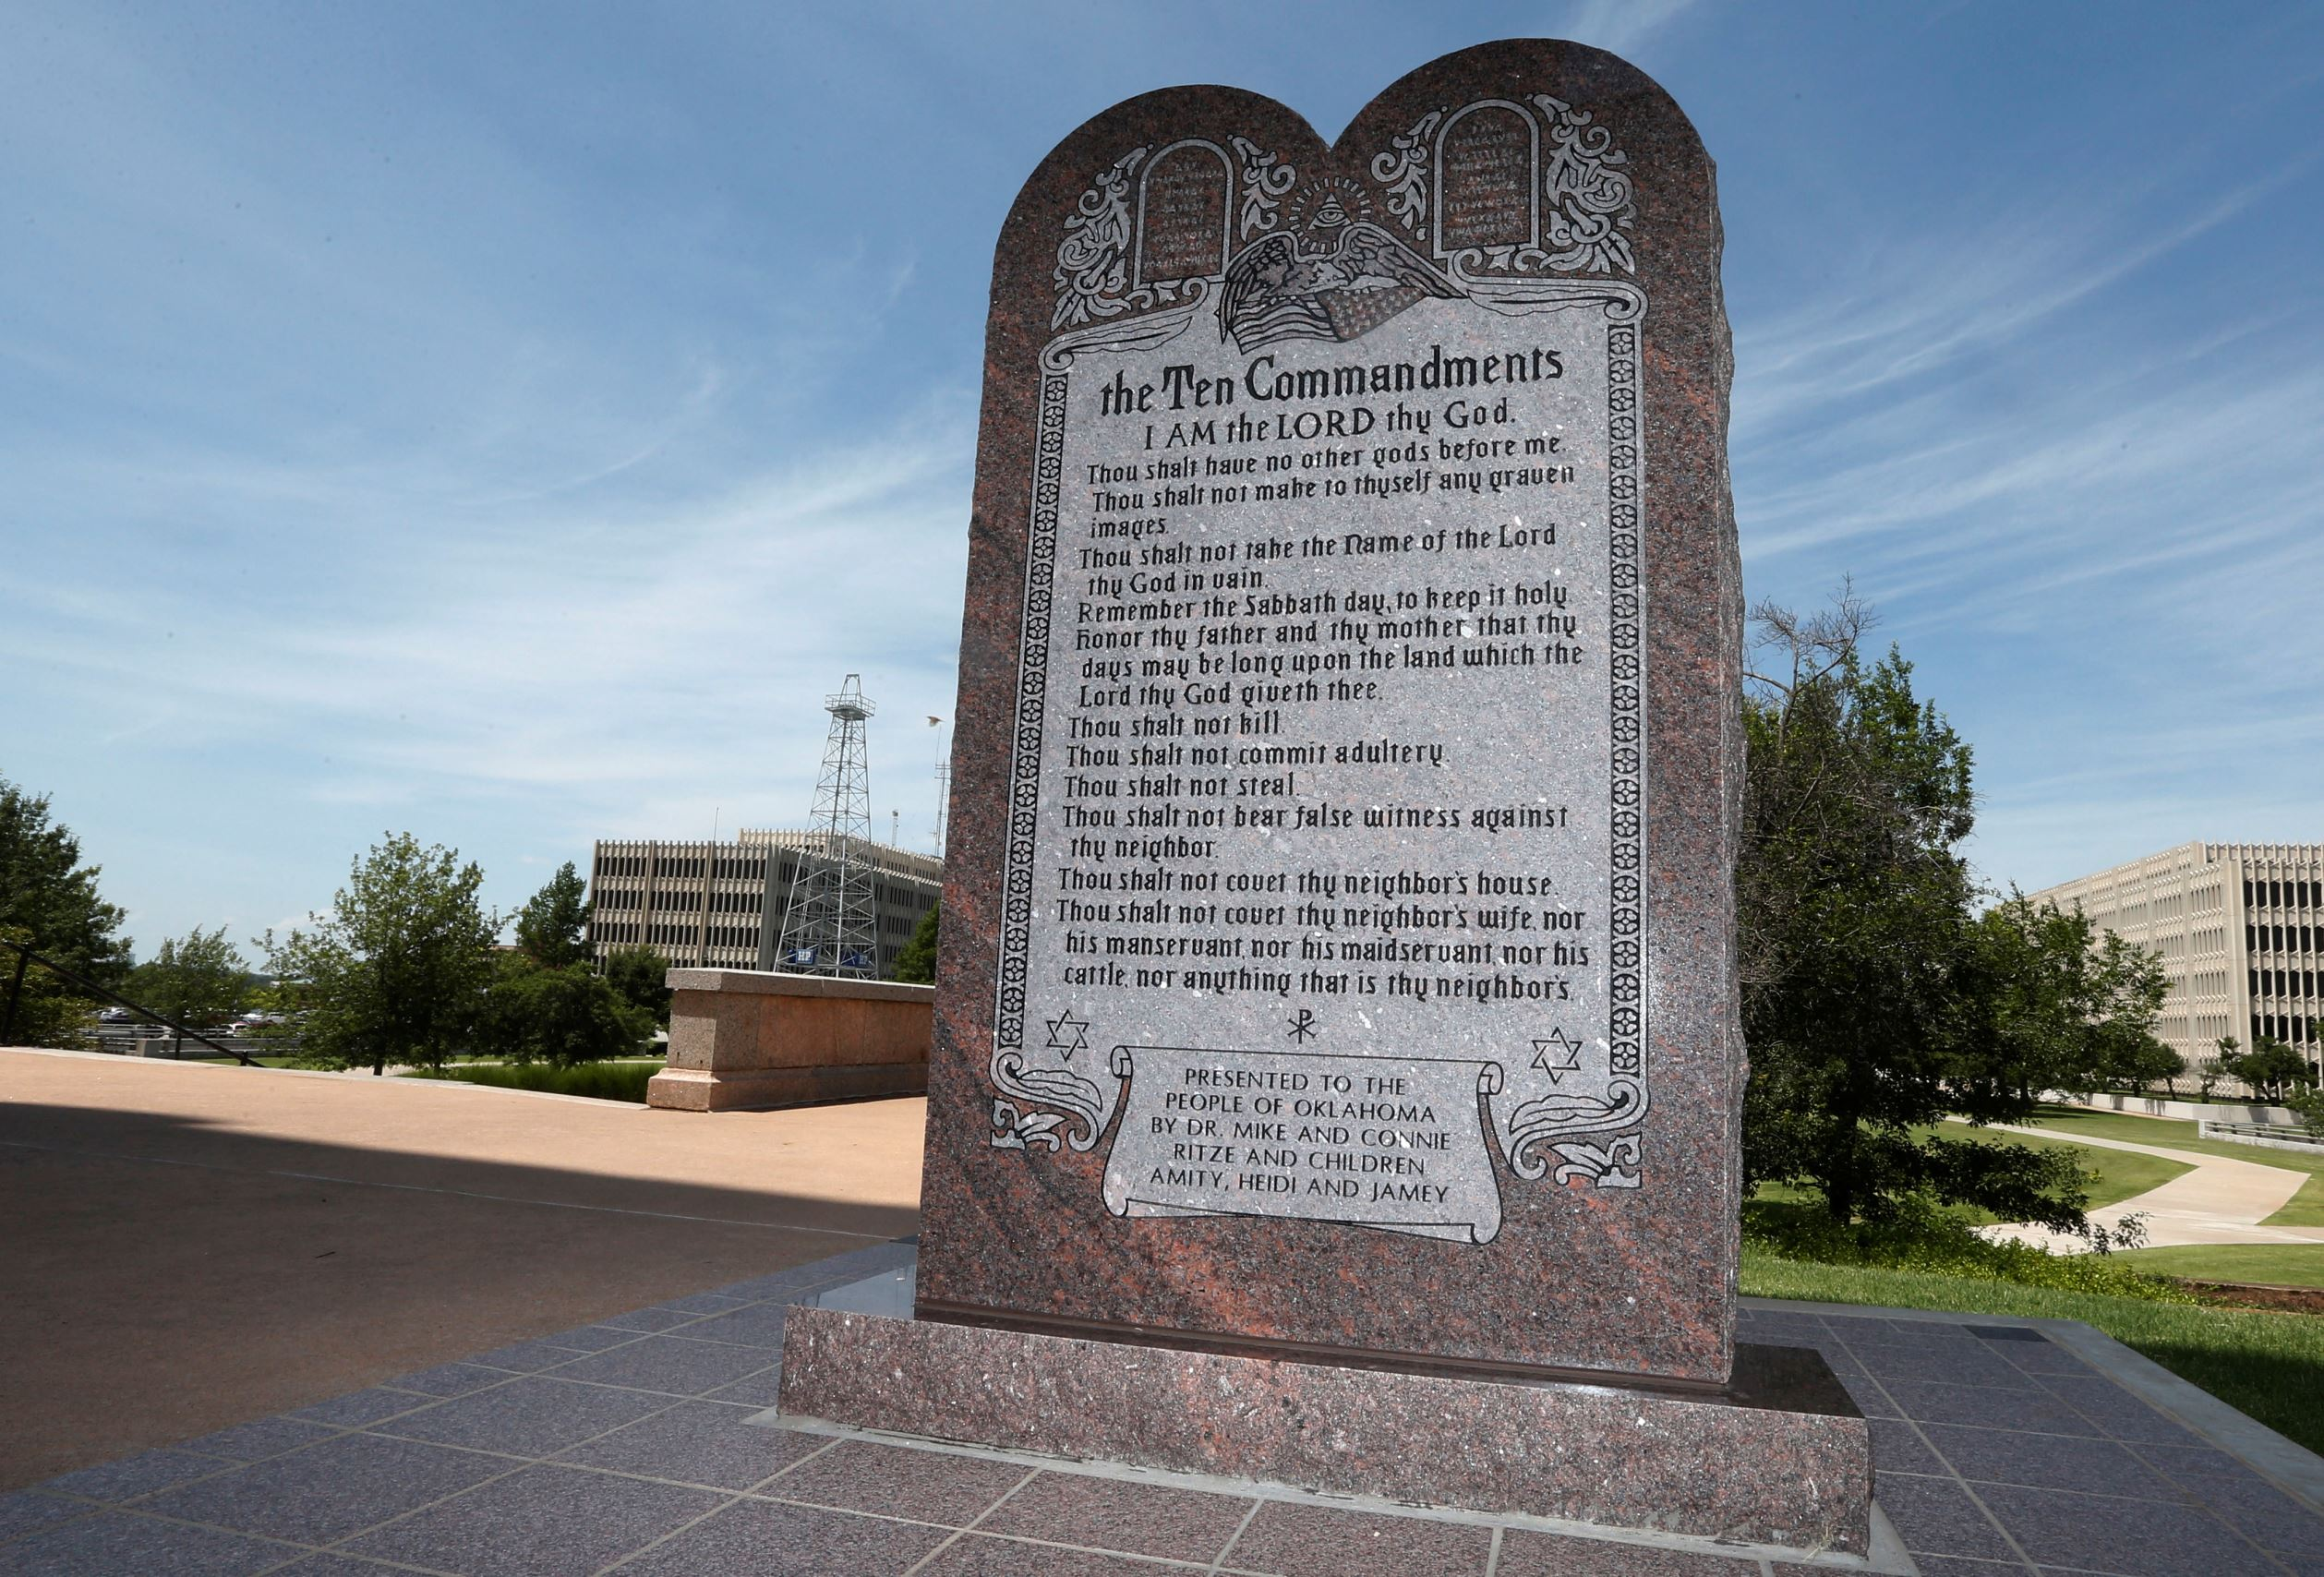 The Ten Commandments monument at the state Capitol in Oklahoma City.